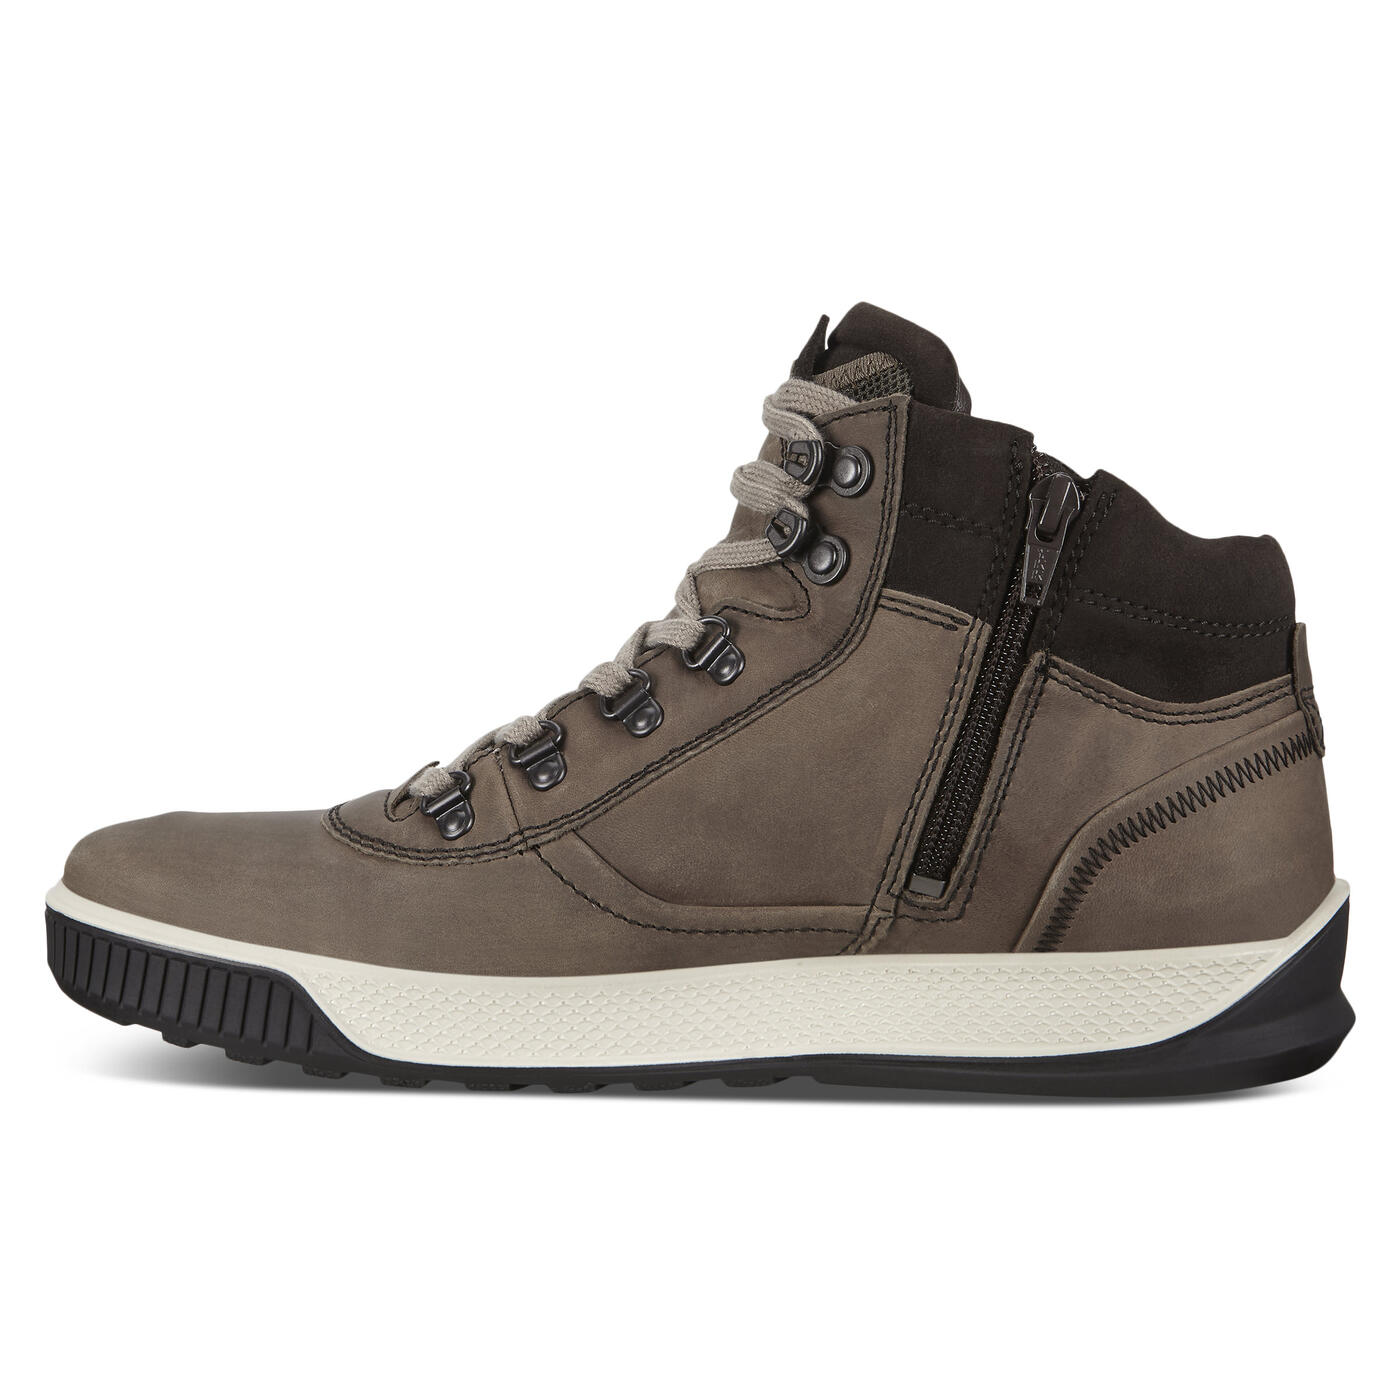 ECCO BYWAY TRED Men's Ankle Boot